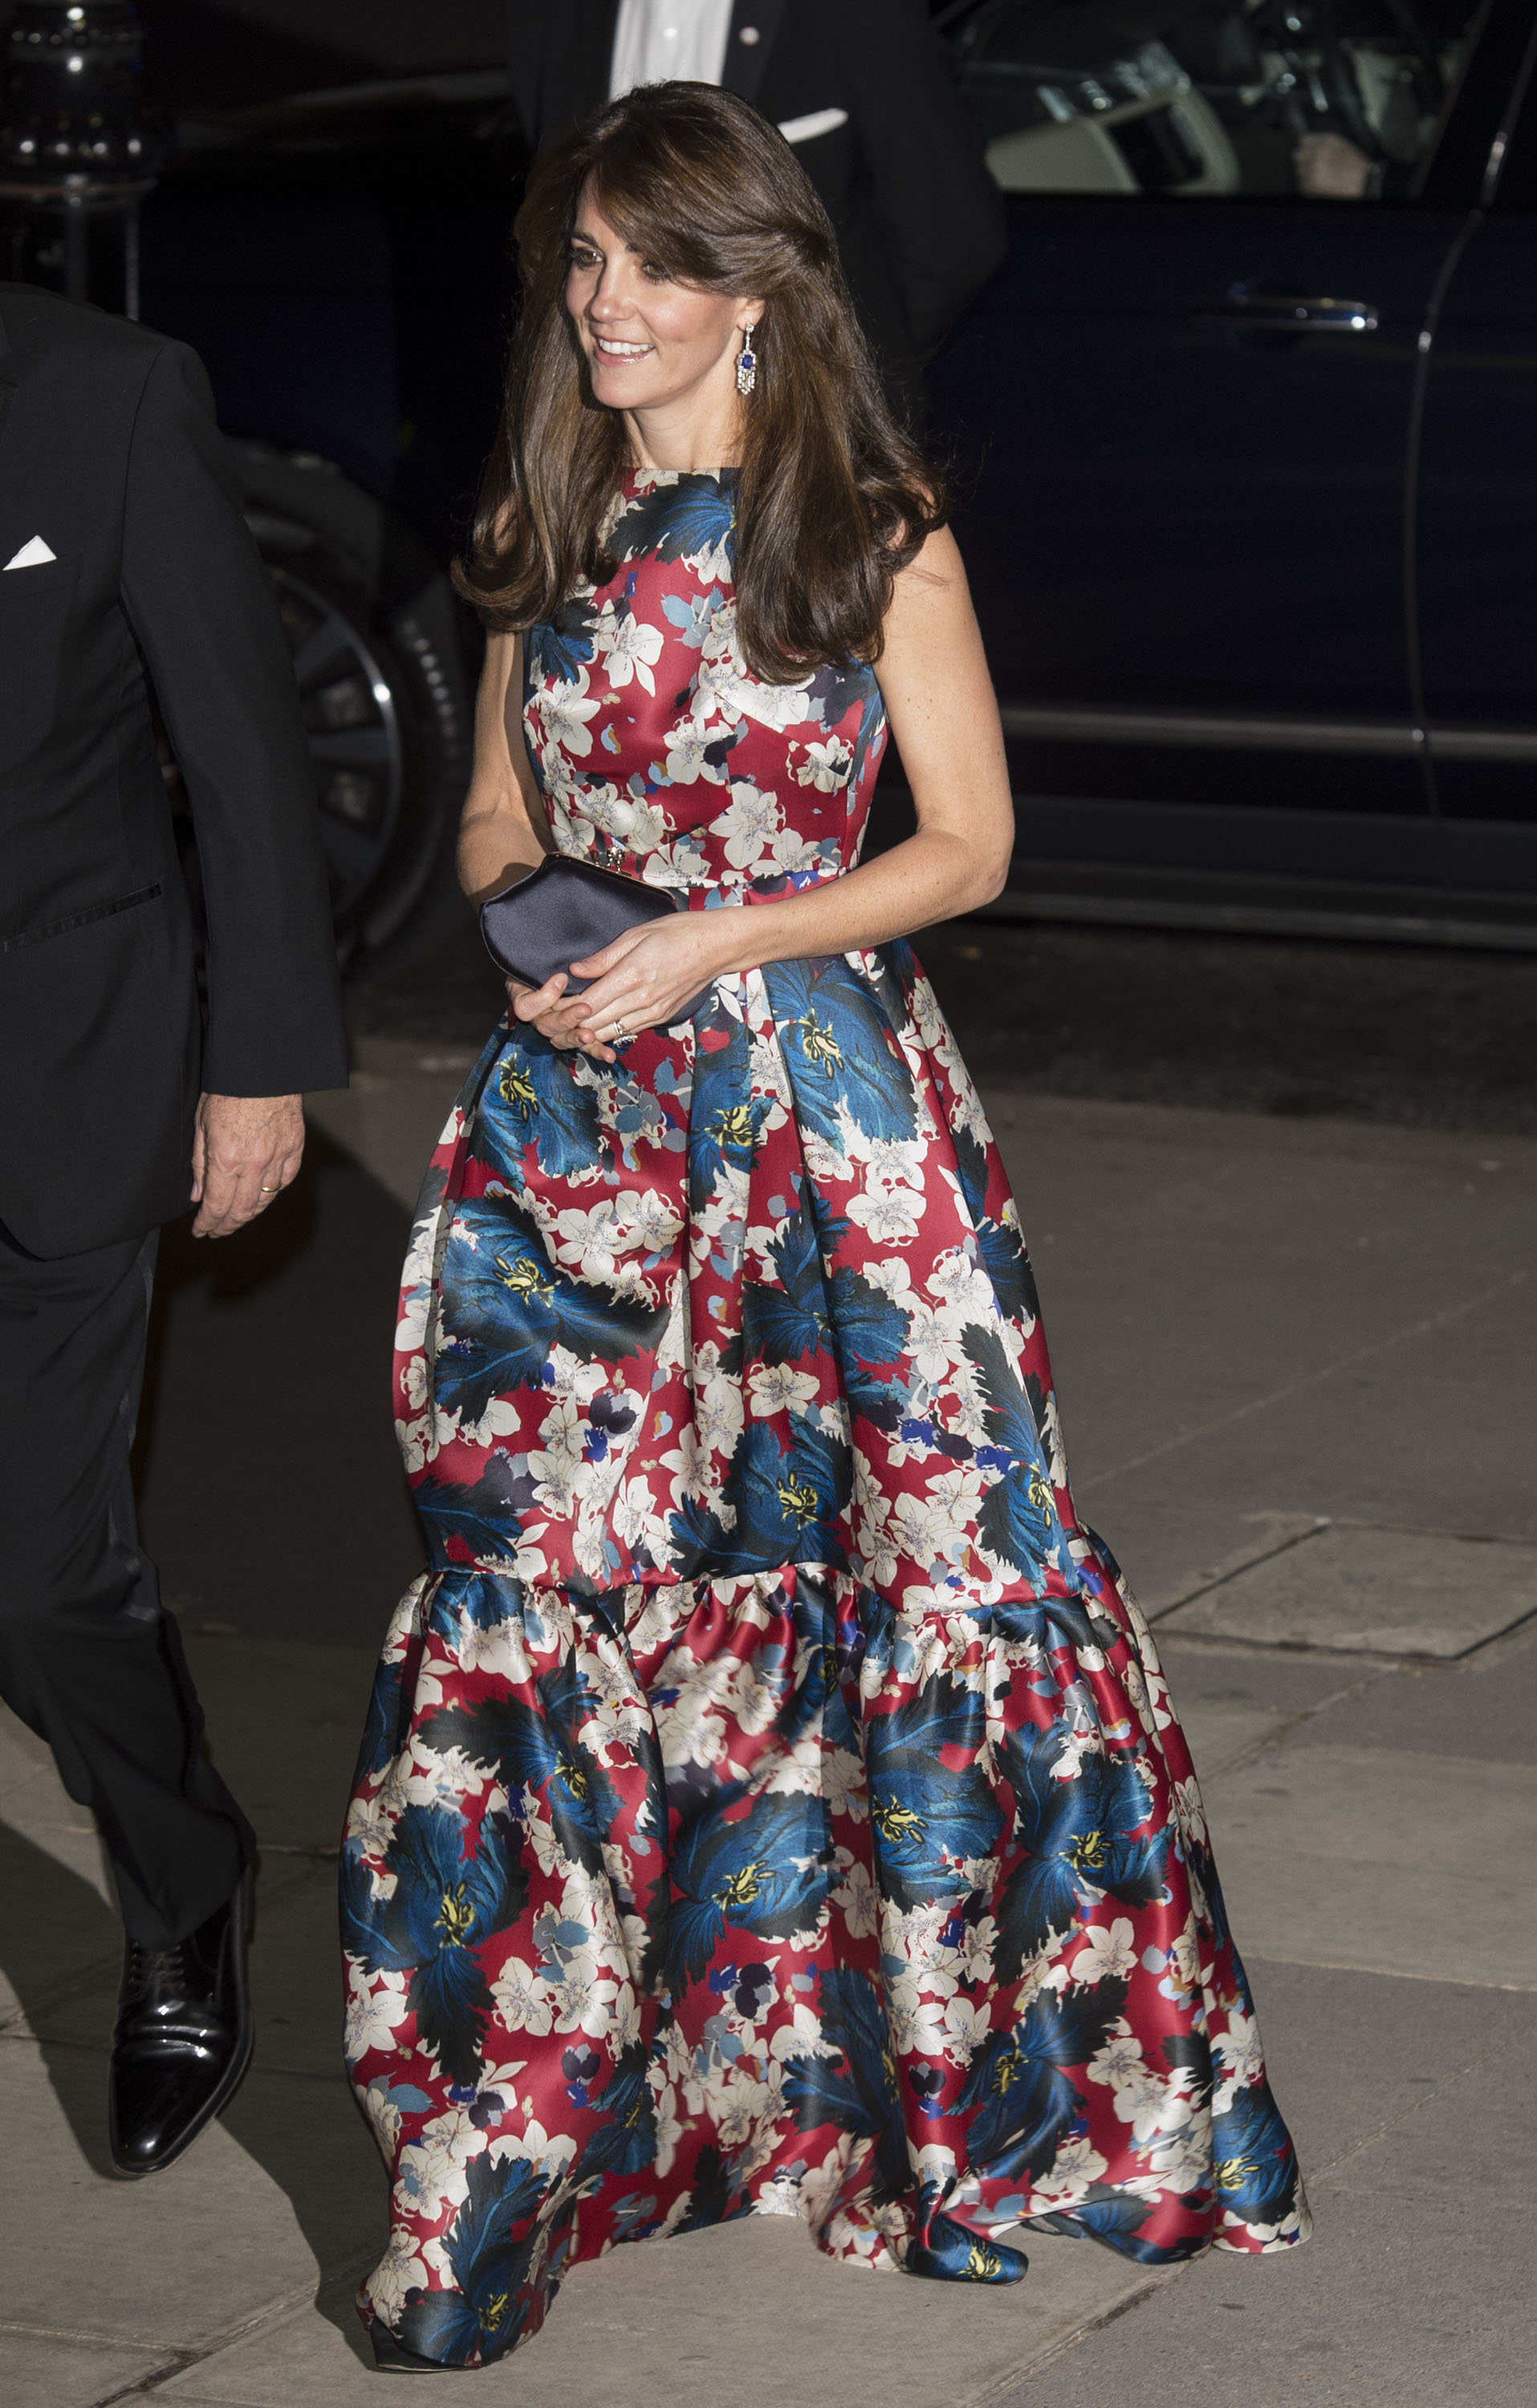 Kate Middleton attends the 100 Women In Hedge Funds Gala Dinner in London on Oct. 27, 2015.